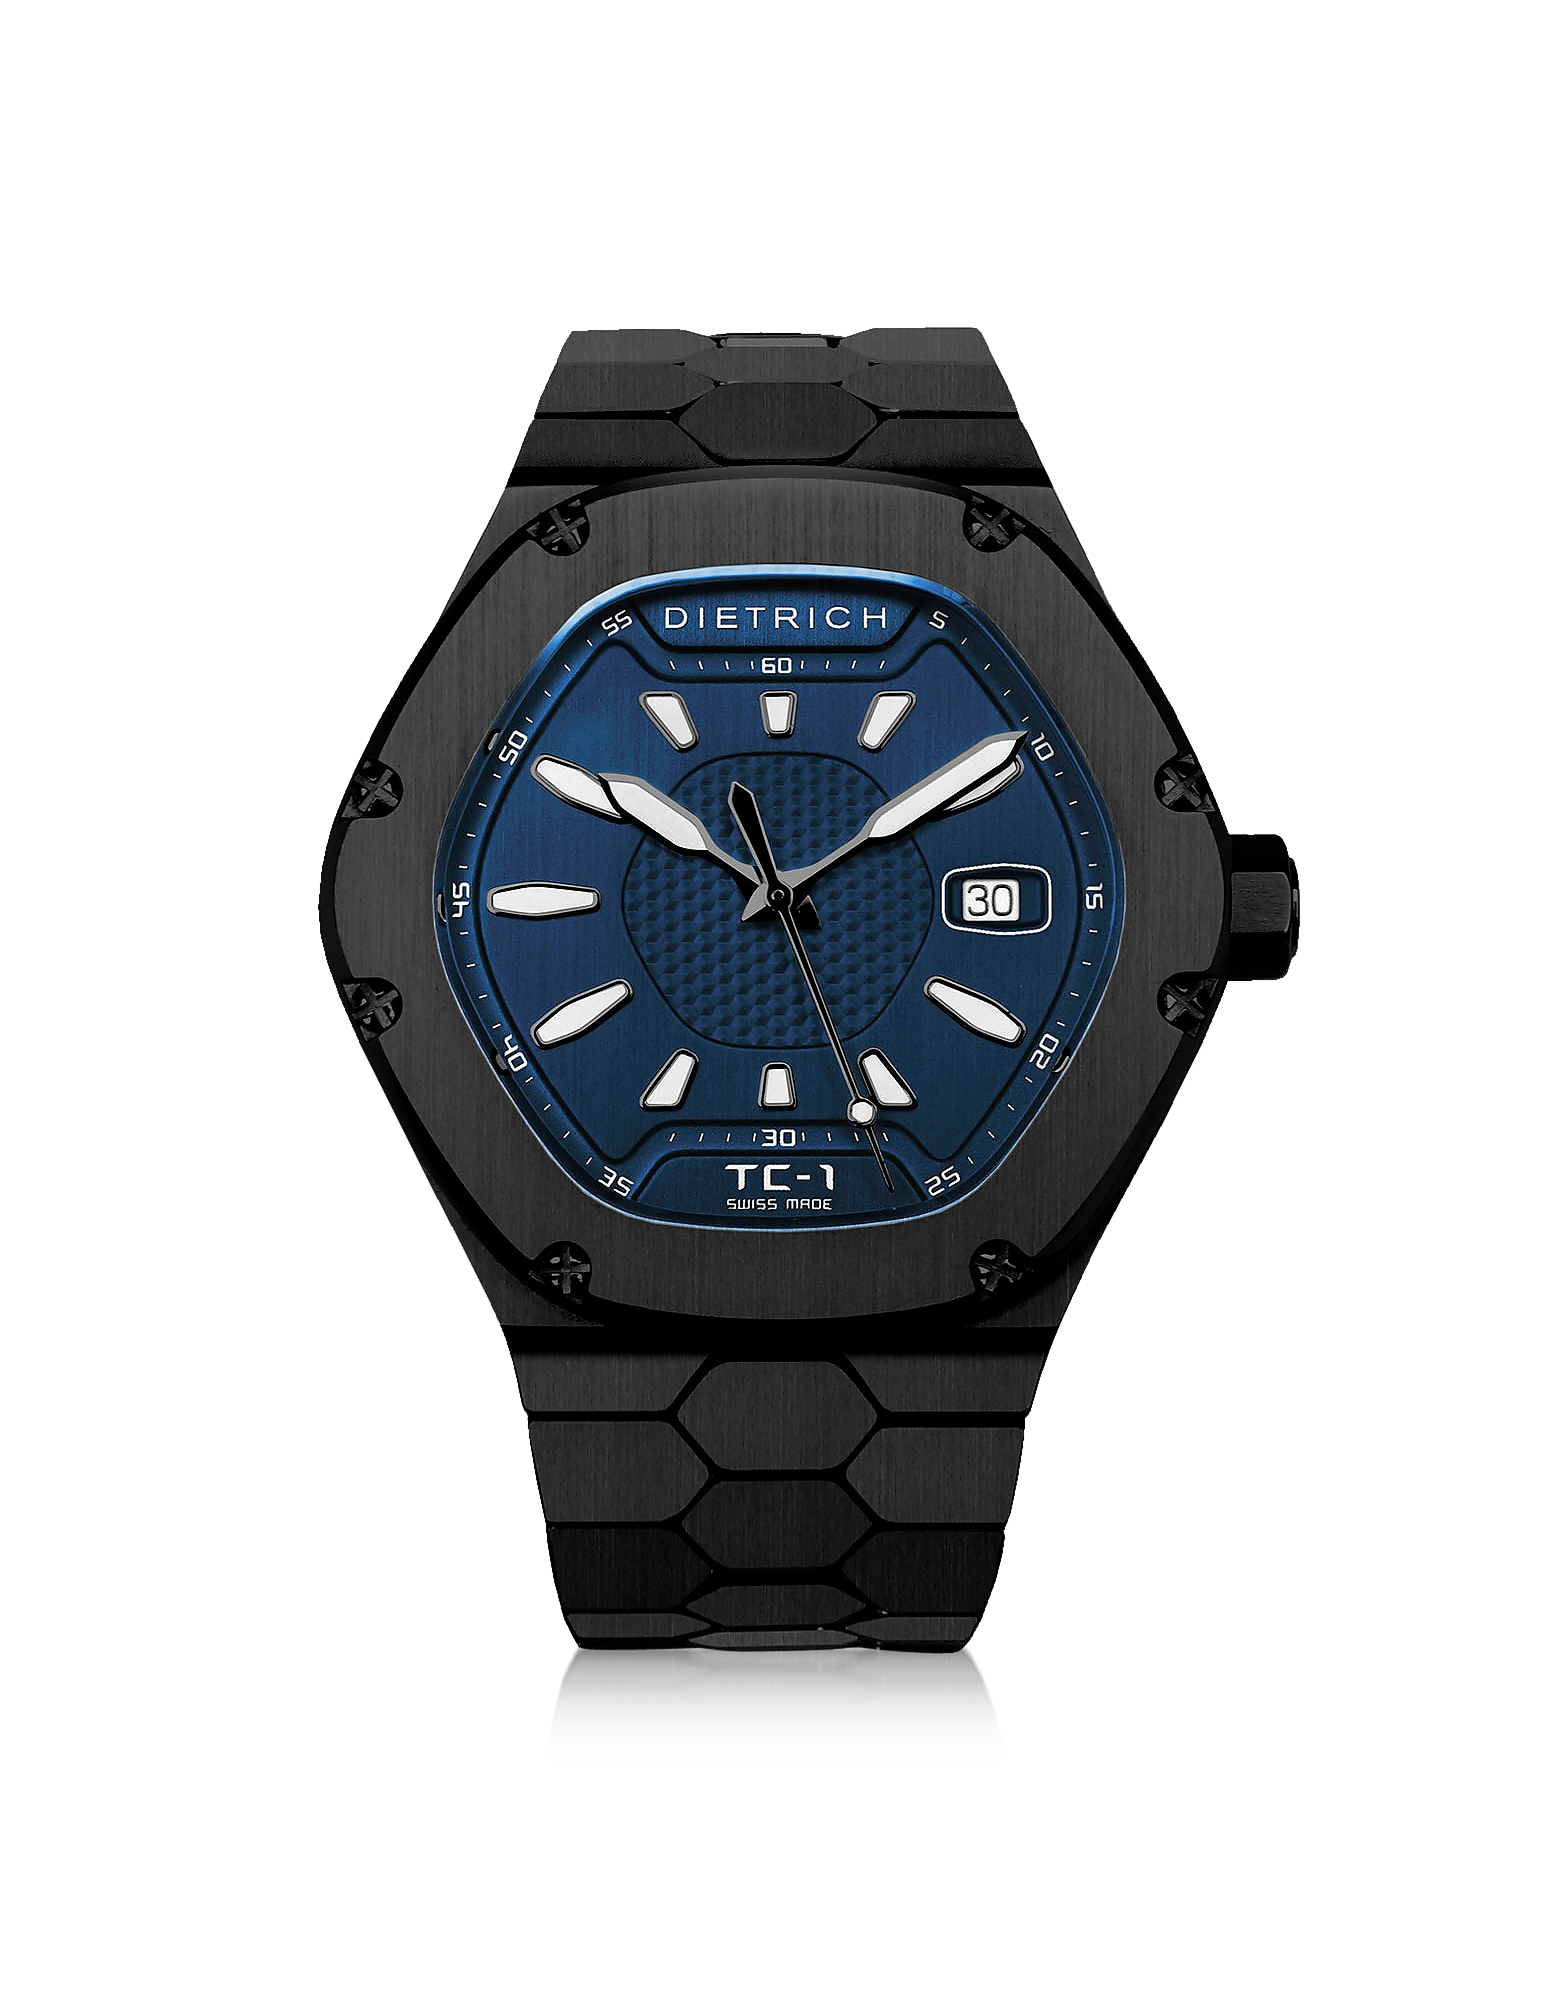 Dietrich Men's Watches, TC-1 Black PVD Stainless Steel w/White Luminova and Blue Dial